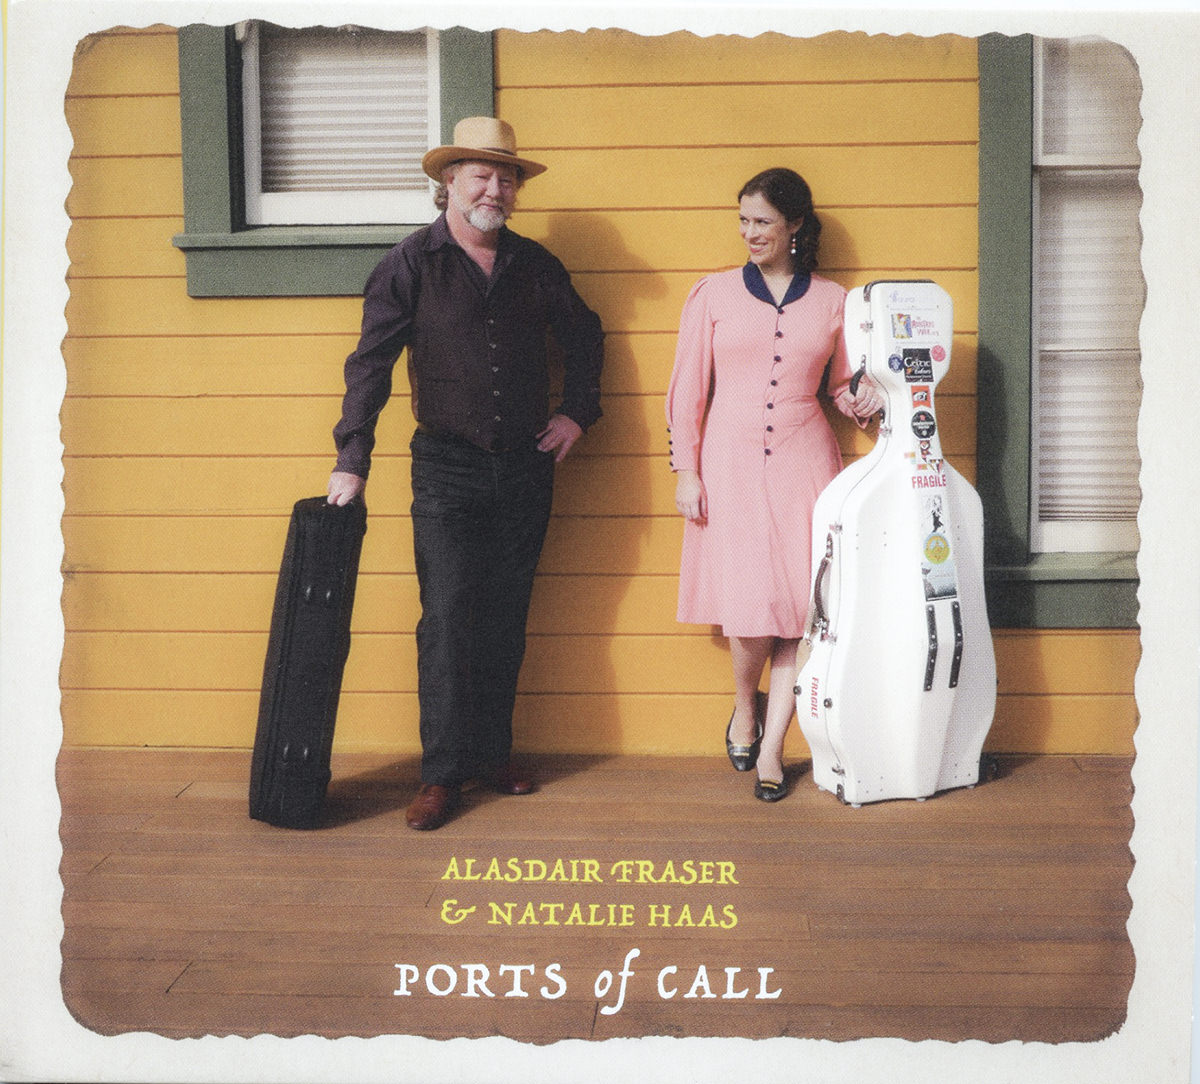 Alasdair Fraser & Natalie Haas, Ports of Call